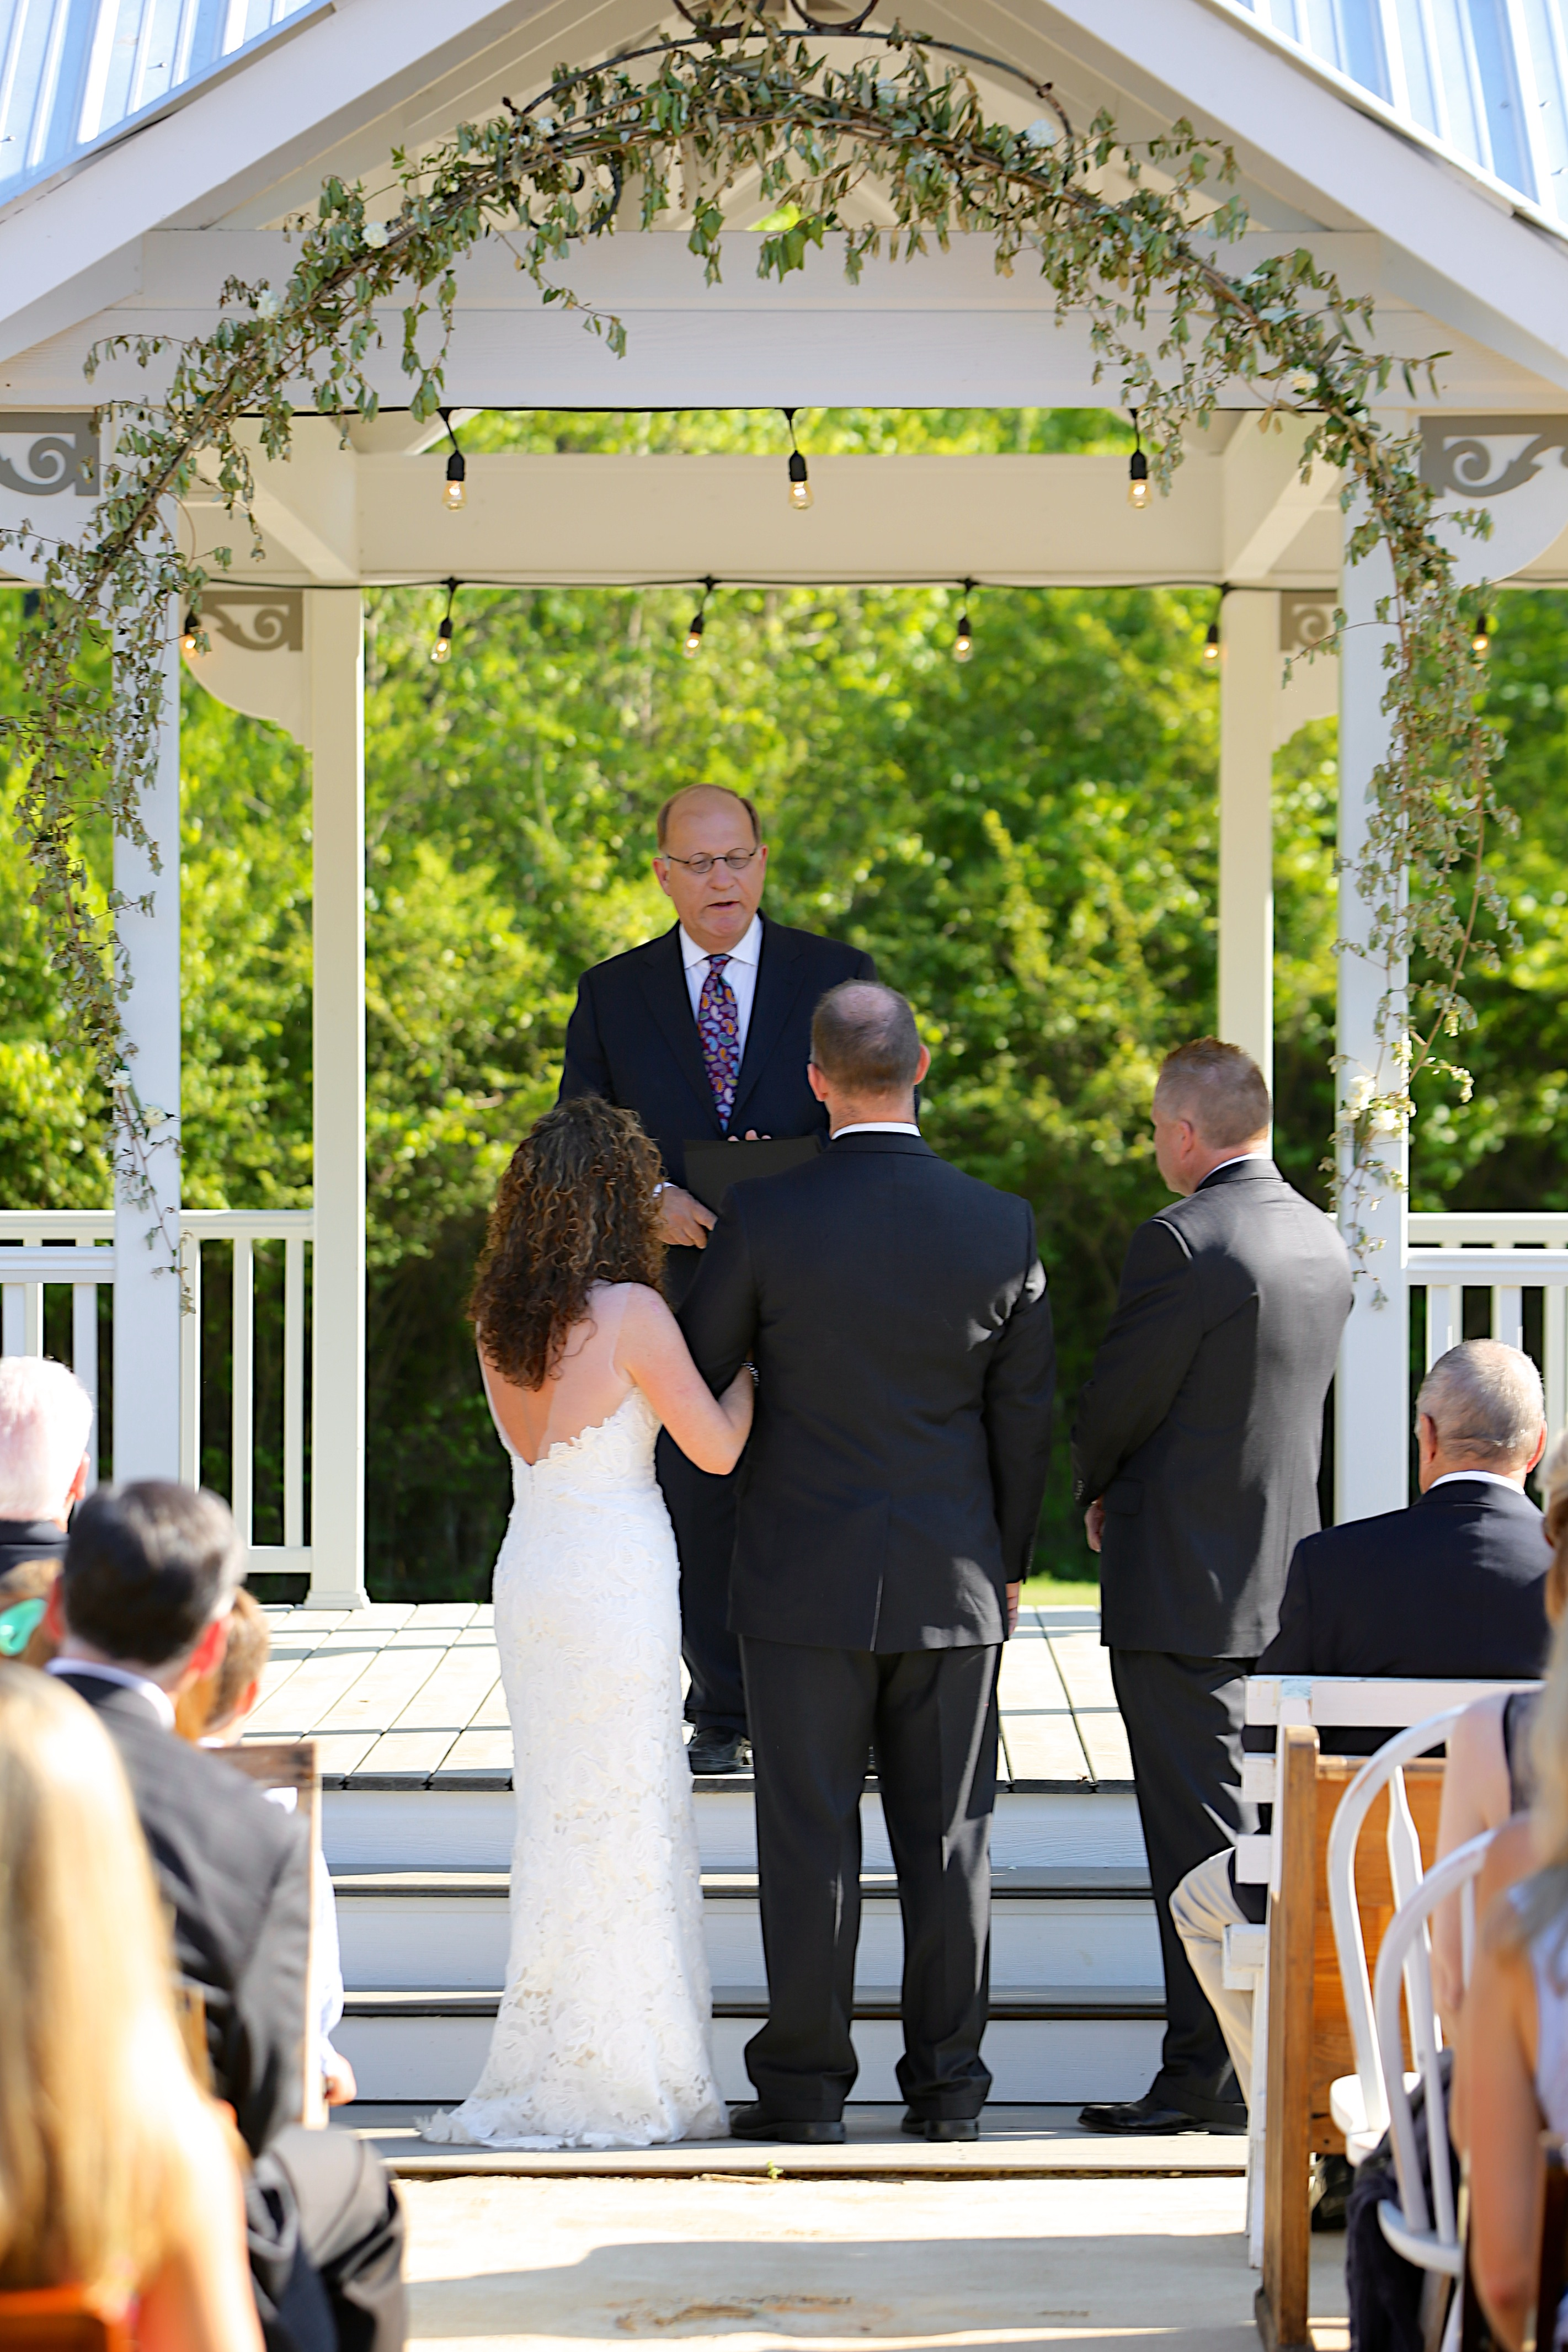 Summer gazebo wedding